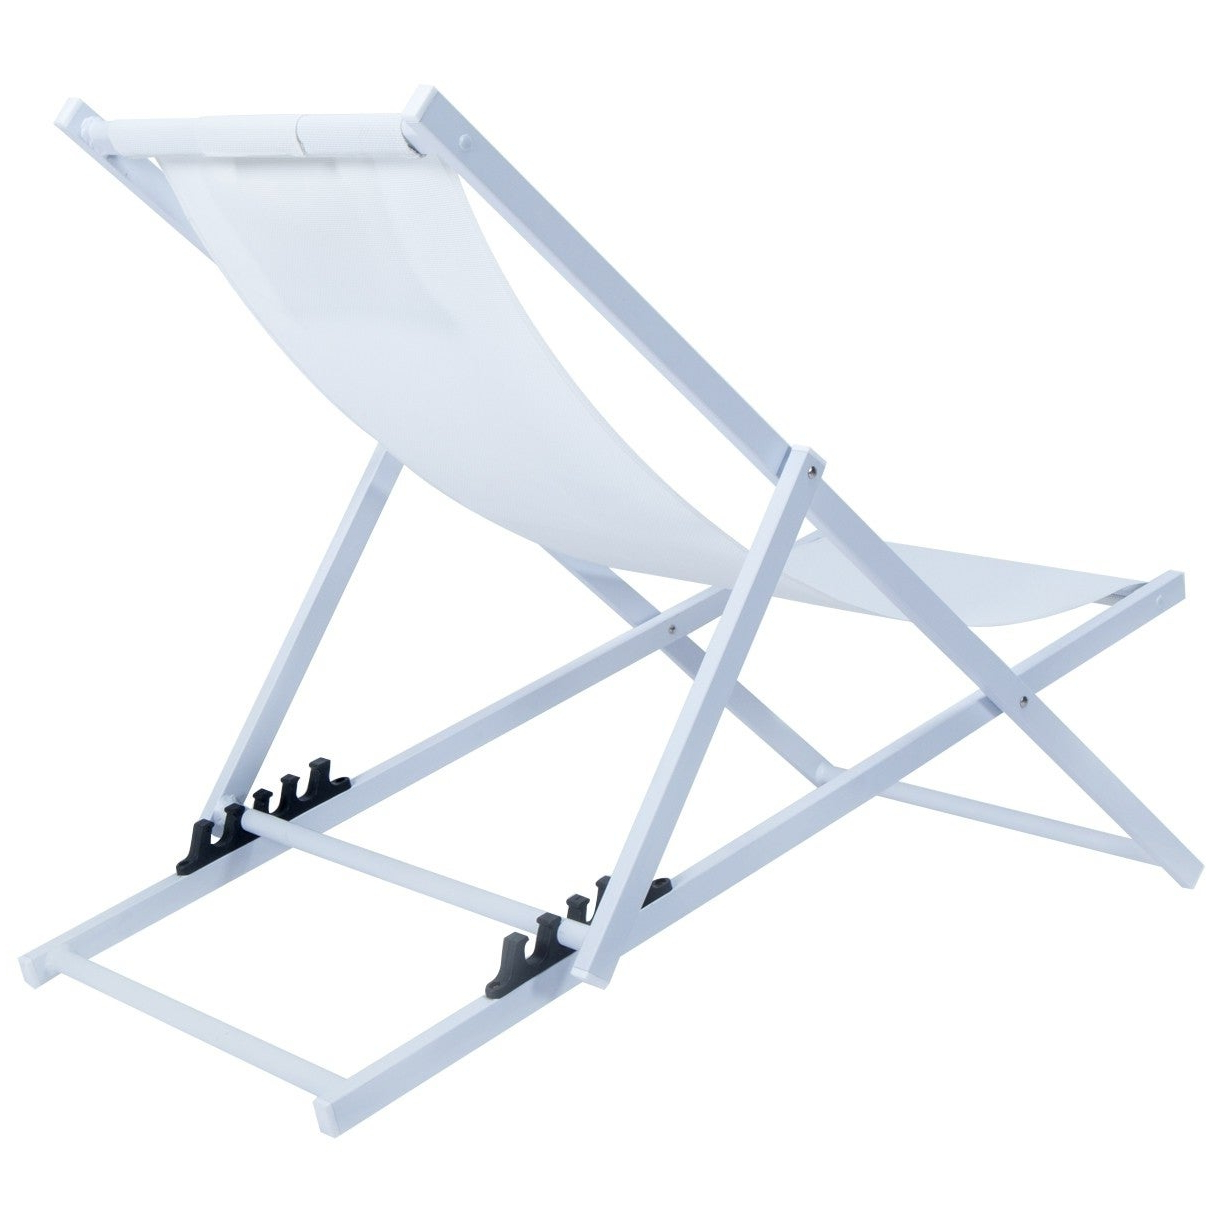 Best And Newest Leisuremod Sunset Patio Sling Folding Chair Adjustable With Headrest Regarding Sunset Patio Sling Folding Chairs With Headrest (Gallery 7 of 25)